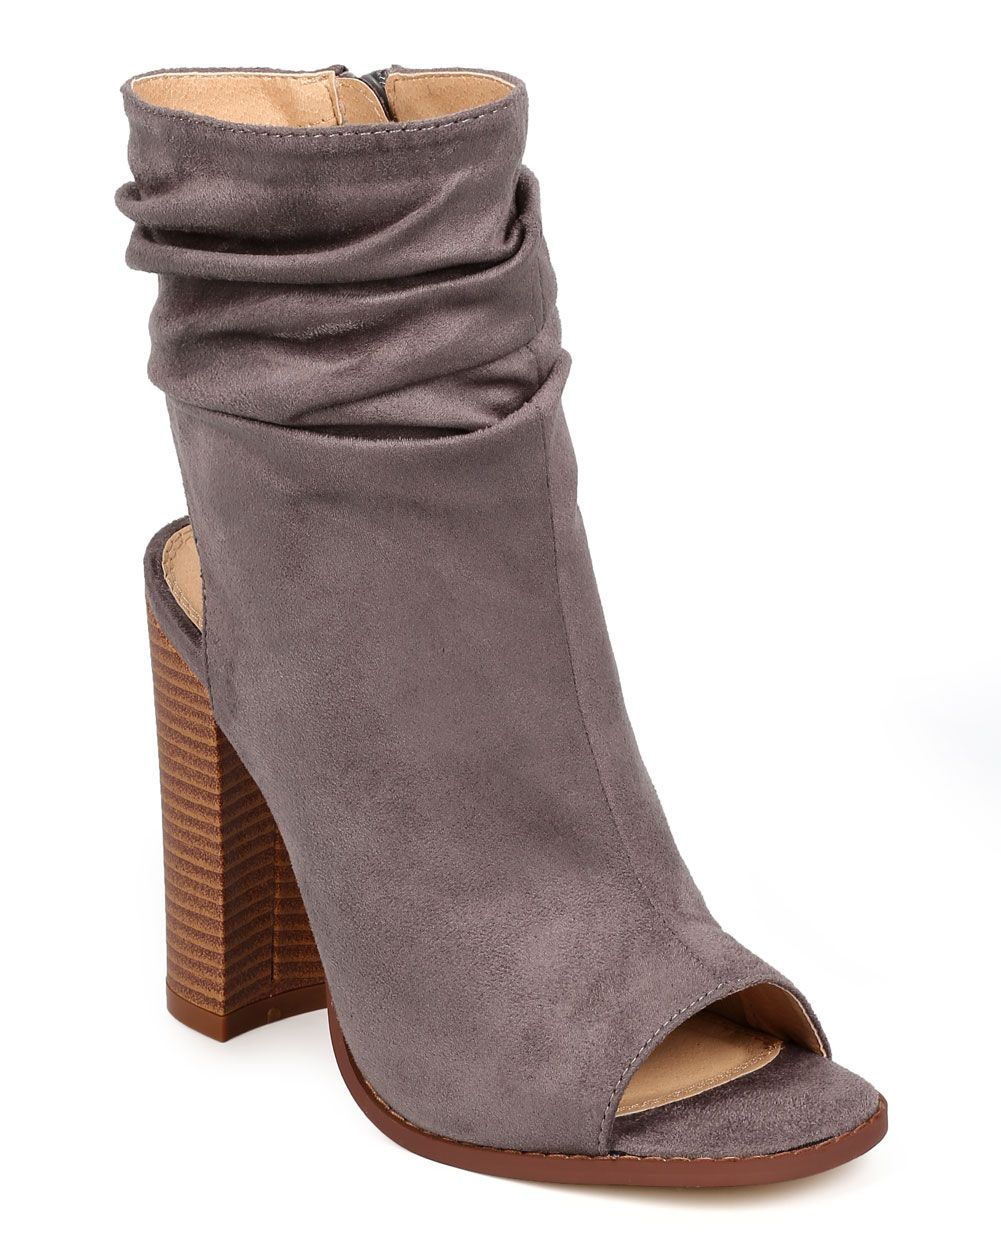 Women's Open Peep Toe Cut Out Chunky Stacked Heel Zip up Ankle Booties High Heel Slouch Boots